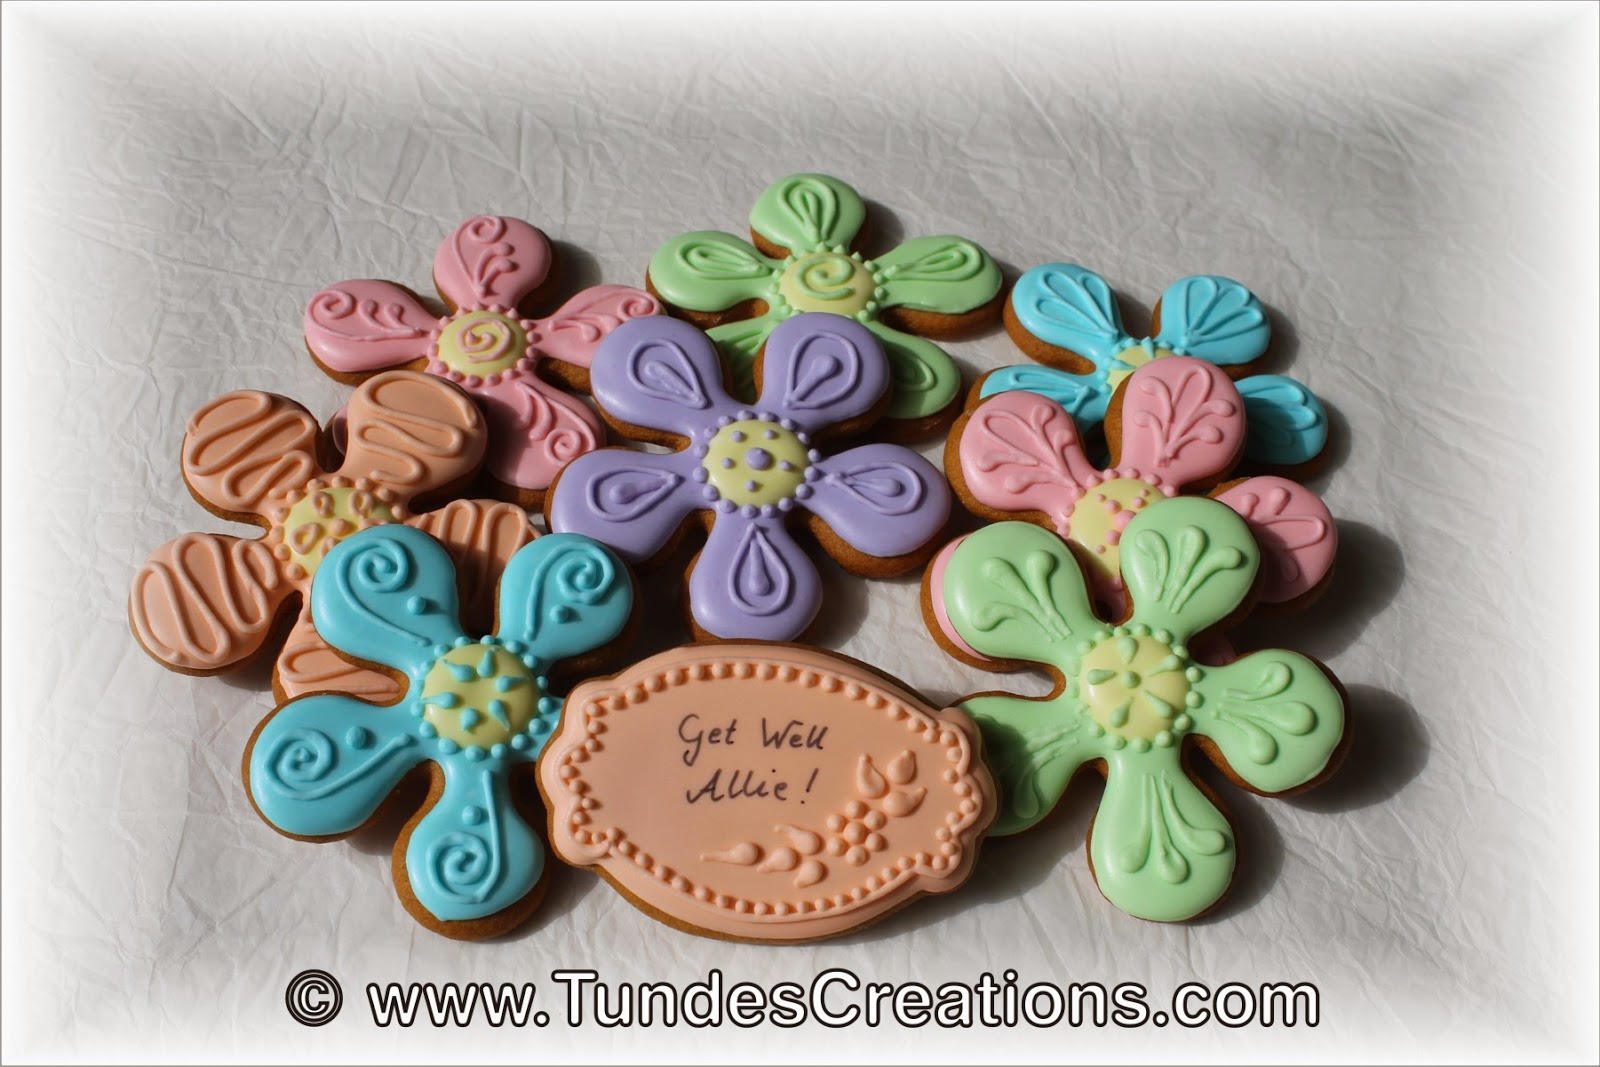 Flower cookies in spring colors